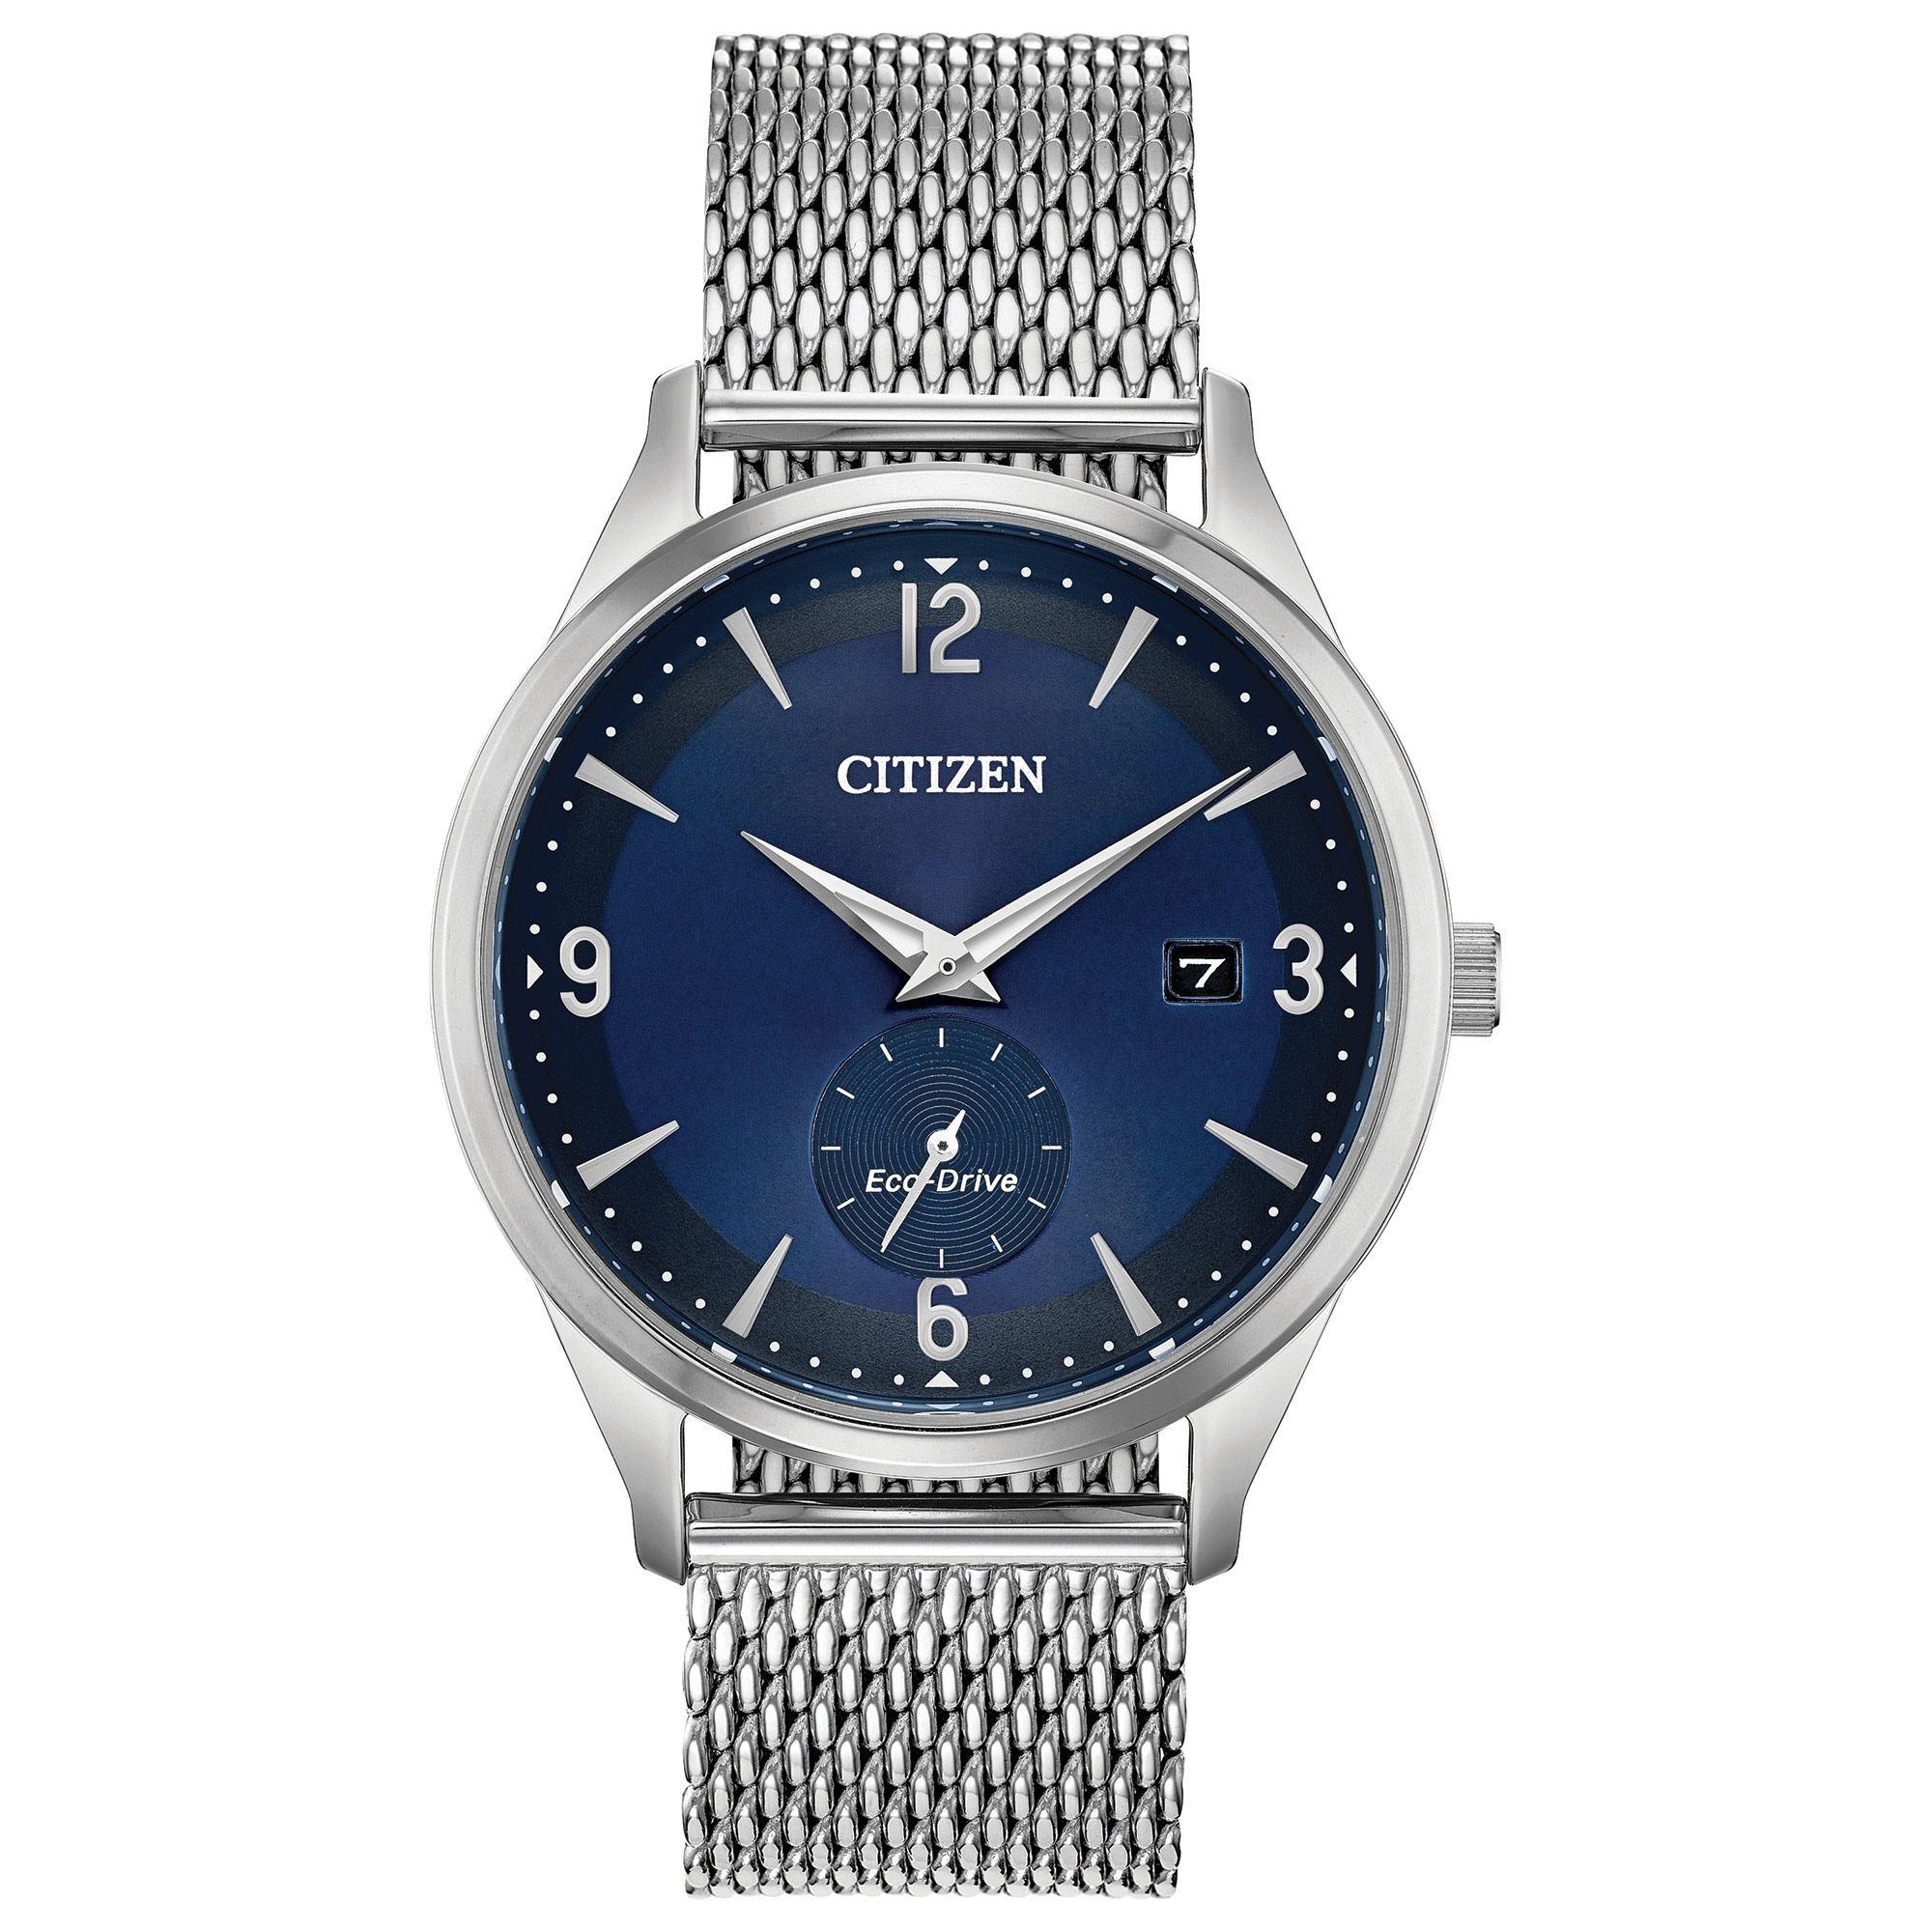 BV1110-51L Citizen BTW - By The Way Eco-Drive Mens Watch